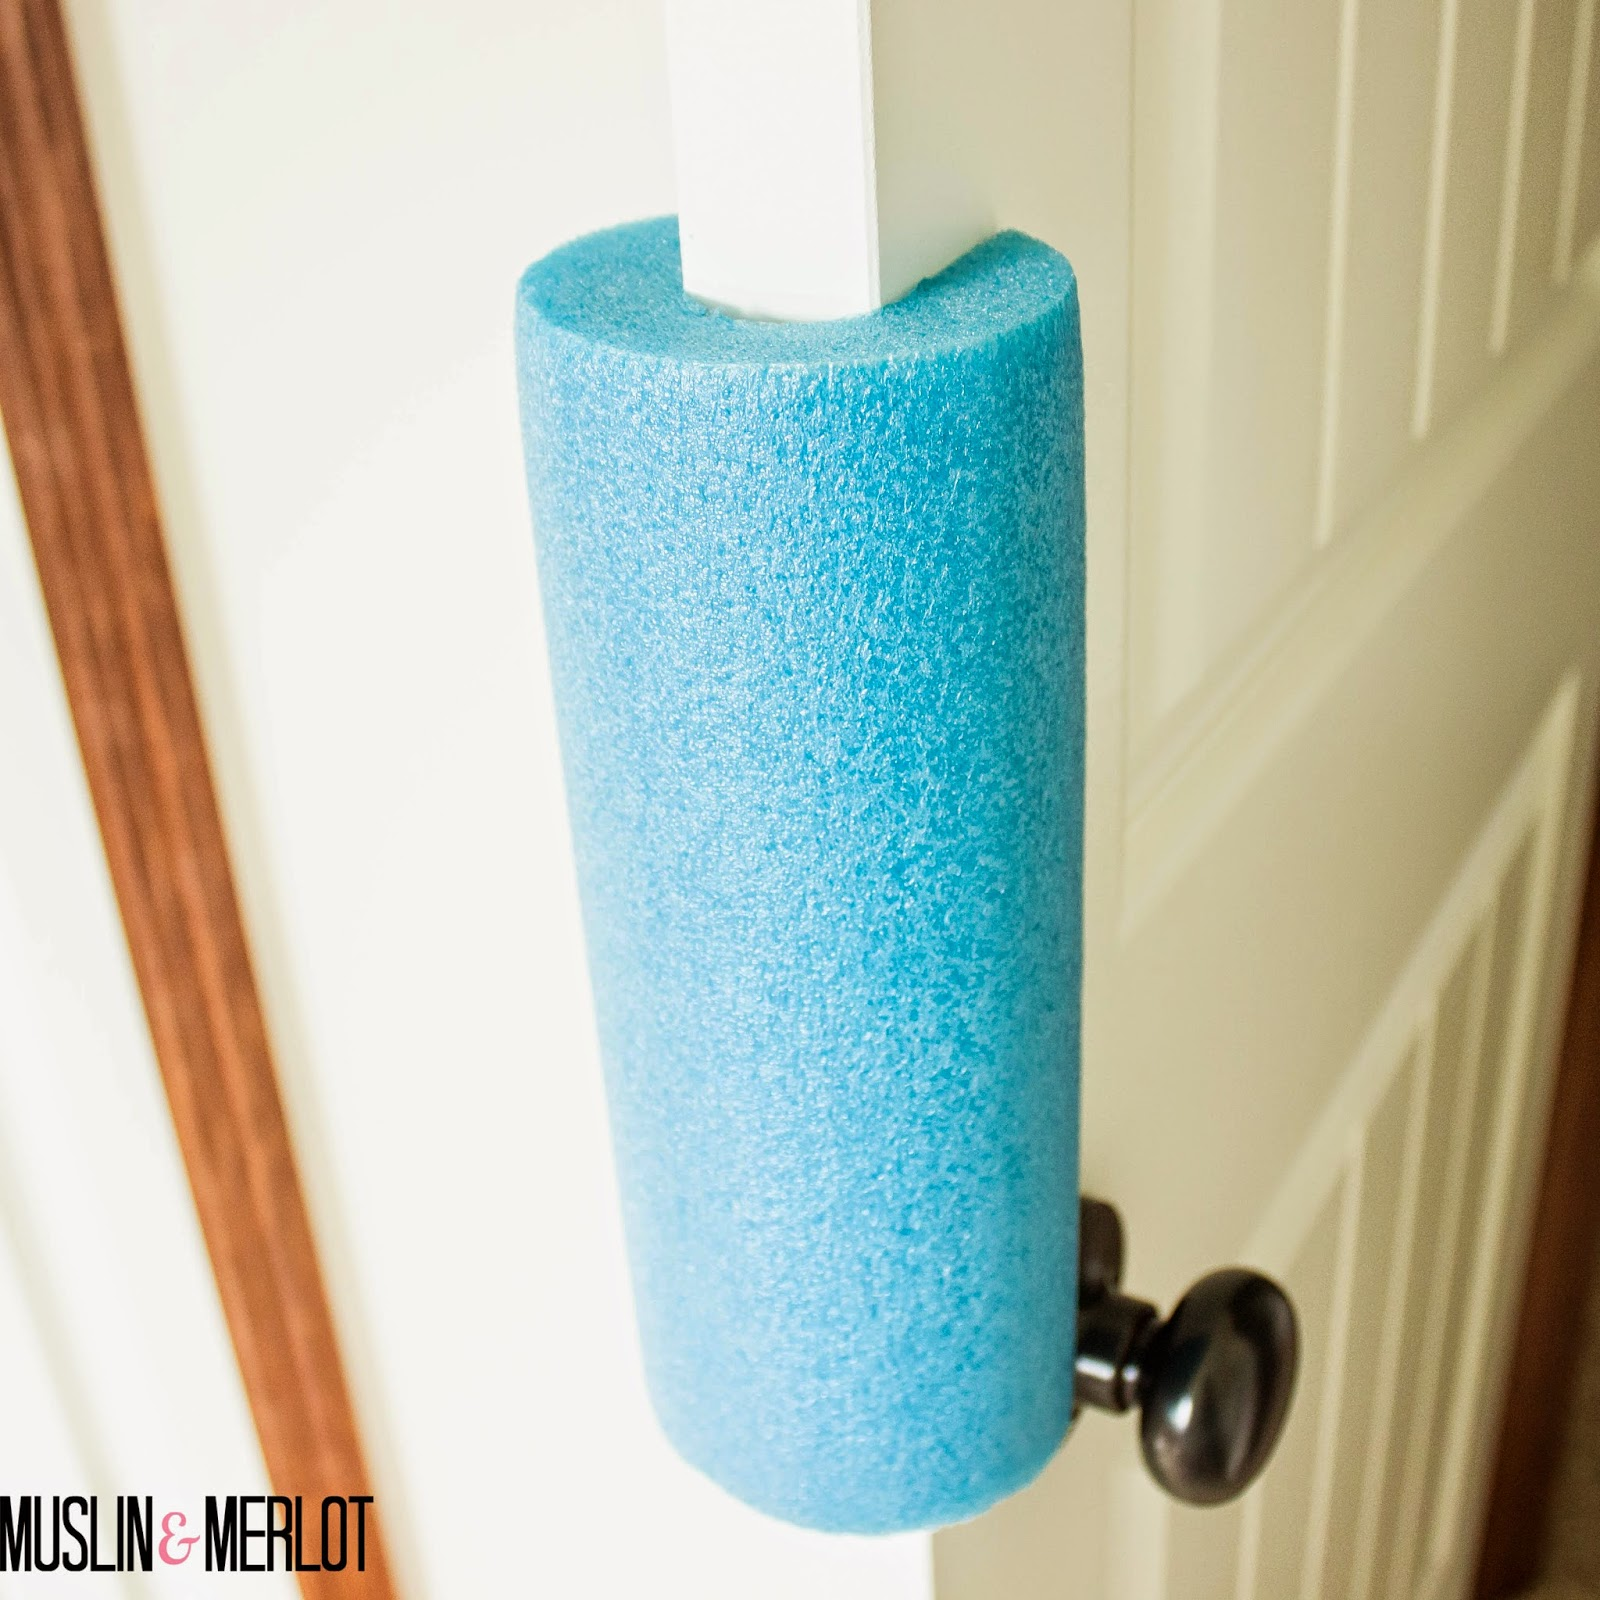 Pool Noodle Door Stop!